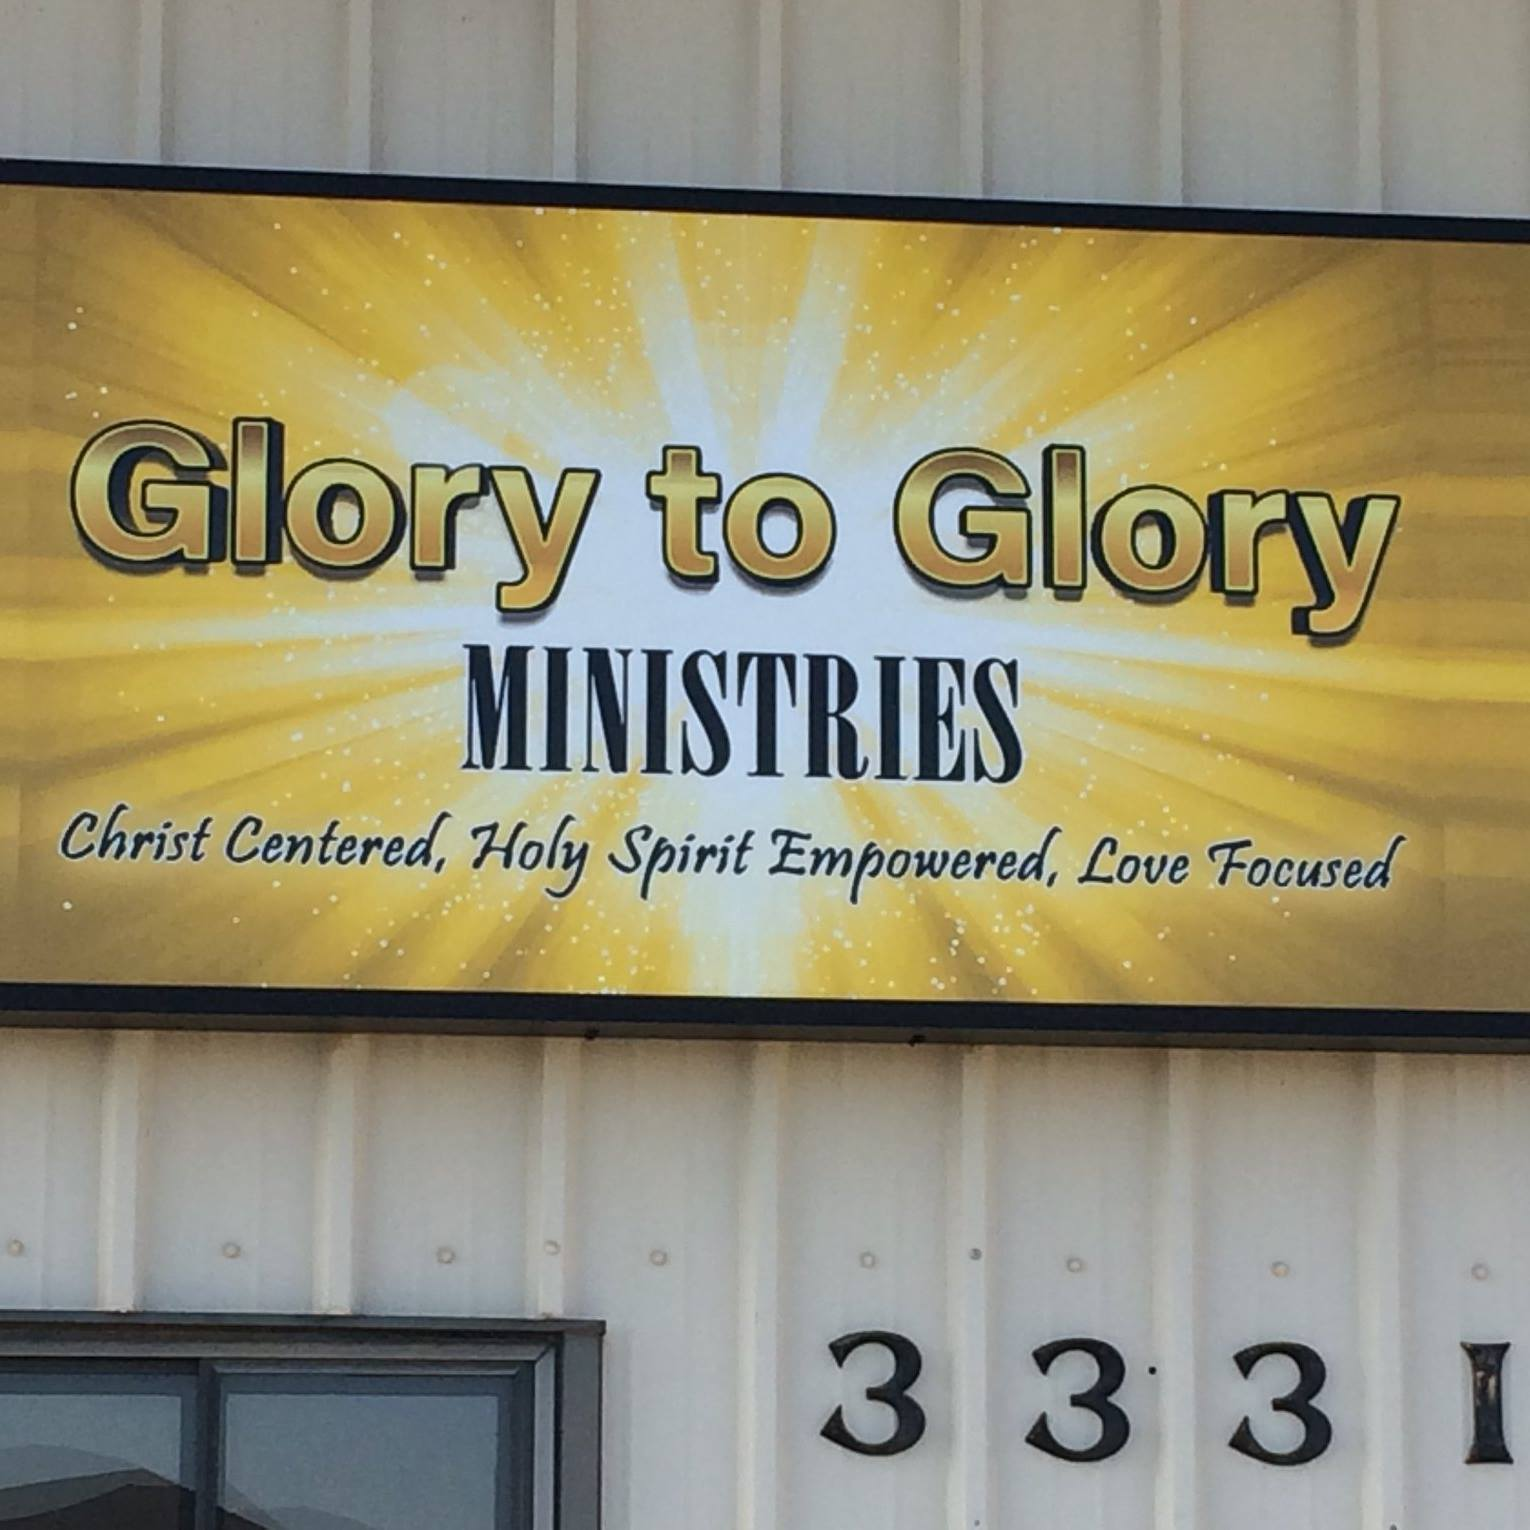 Glory to Glory Ministries